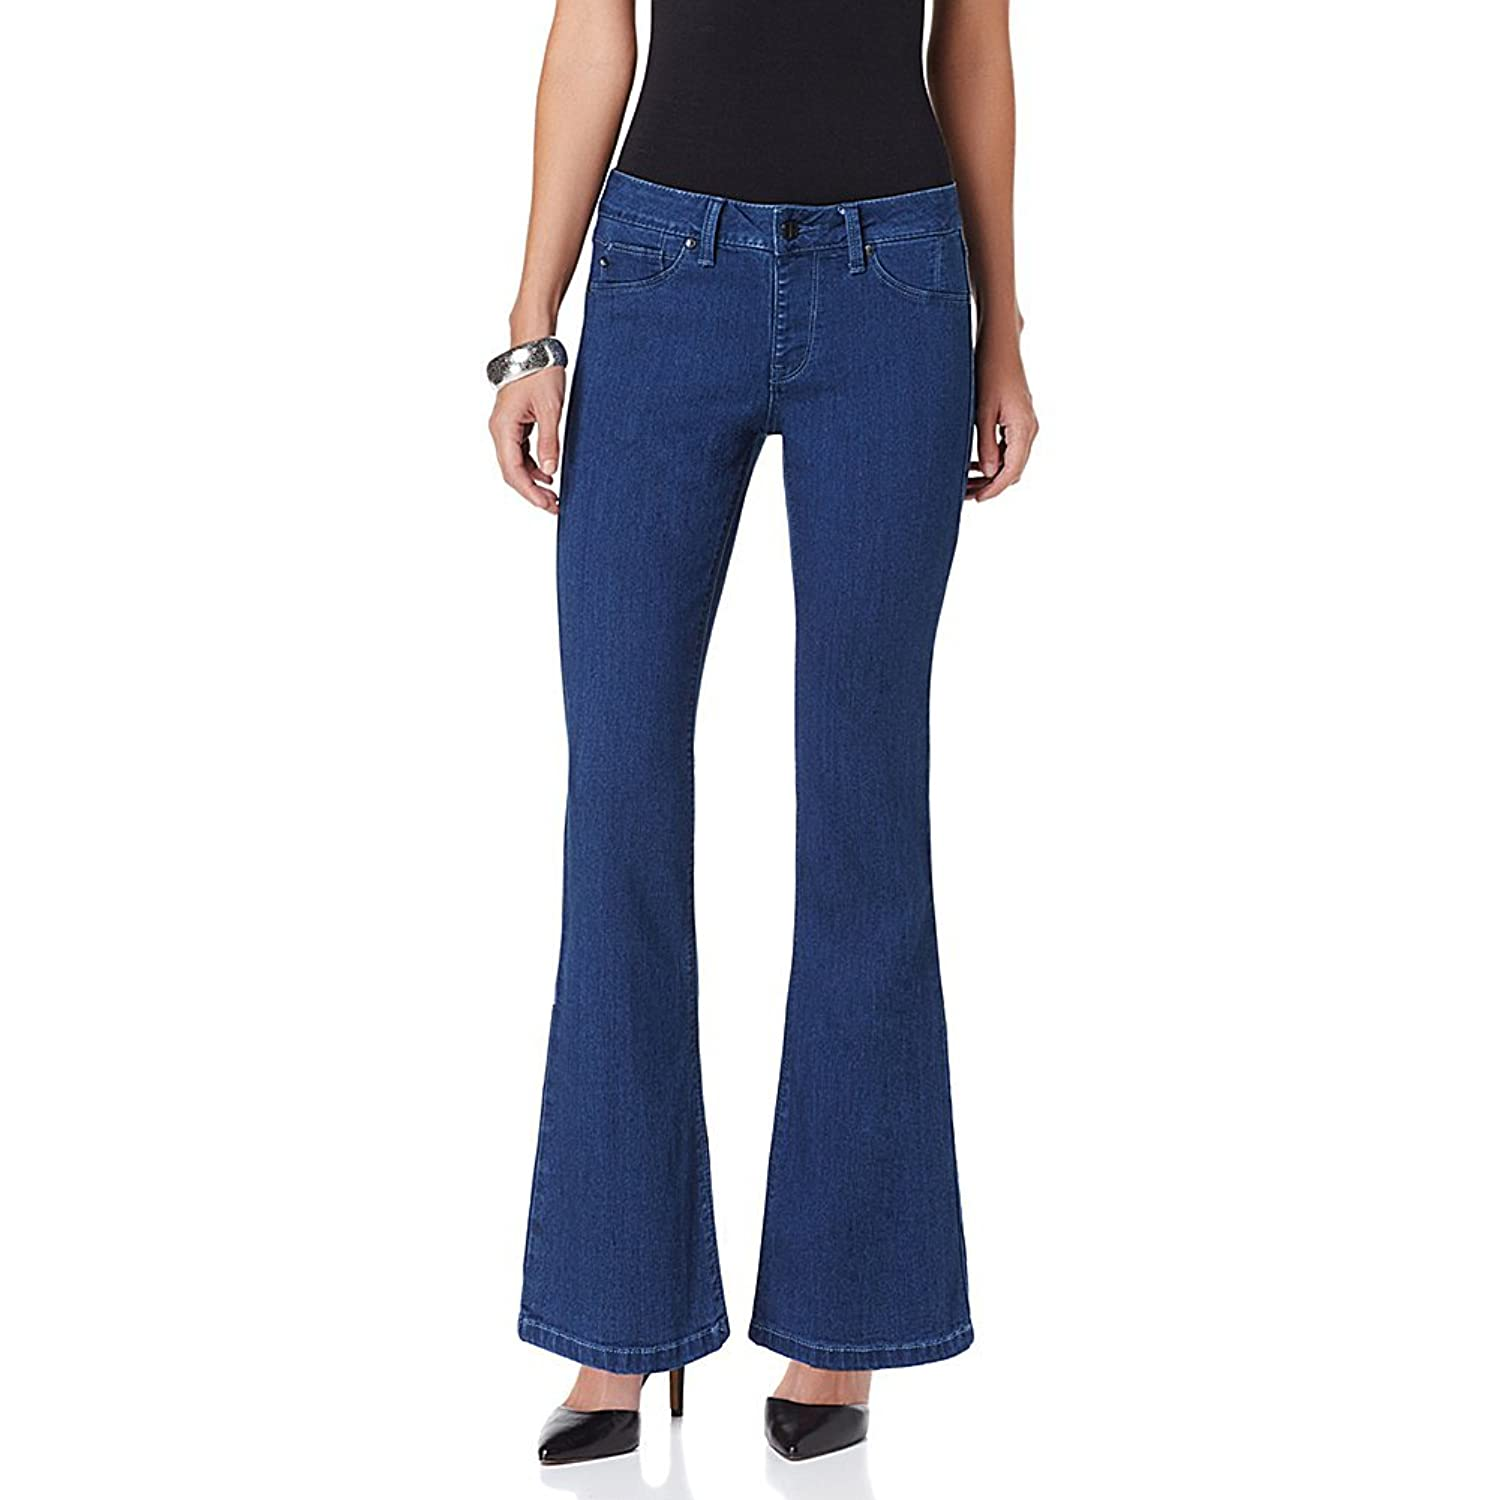 Hot in Hollywood MEGASTRETCH Girlfriend Jean - Size 3X Tall